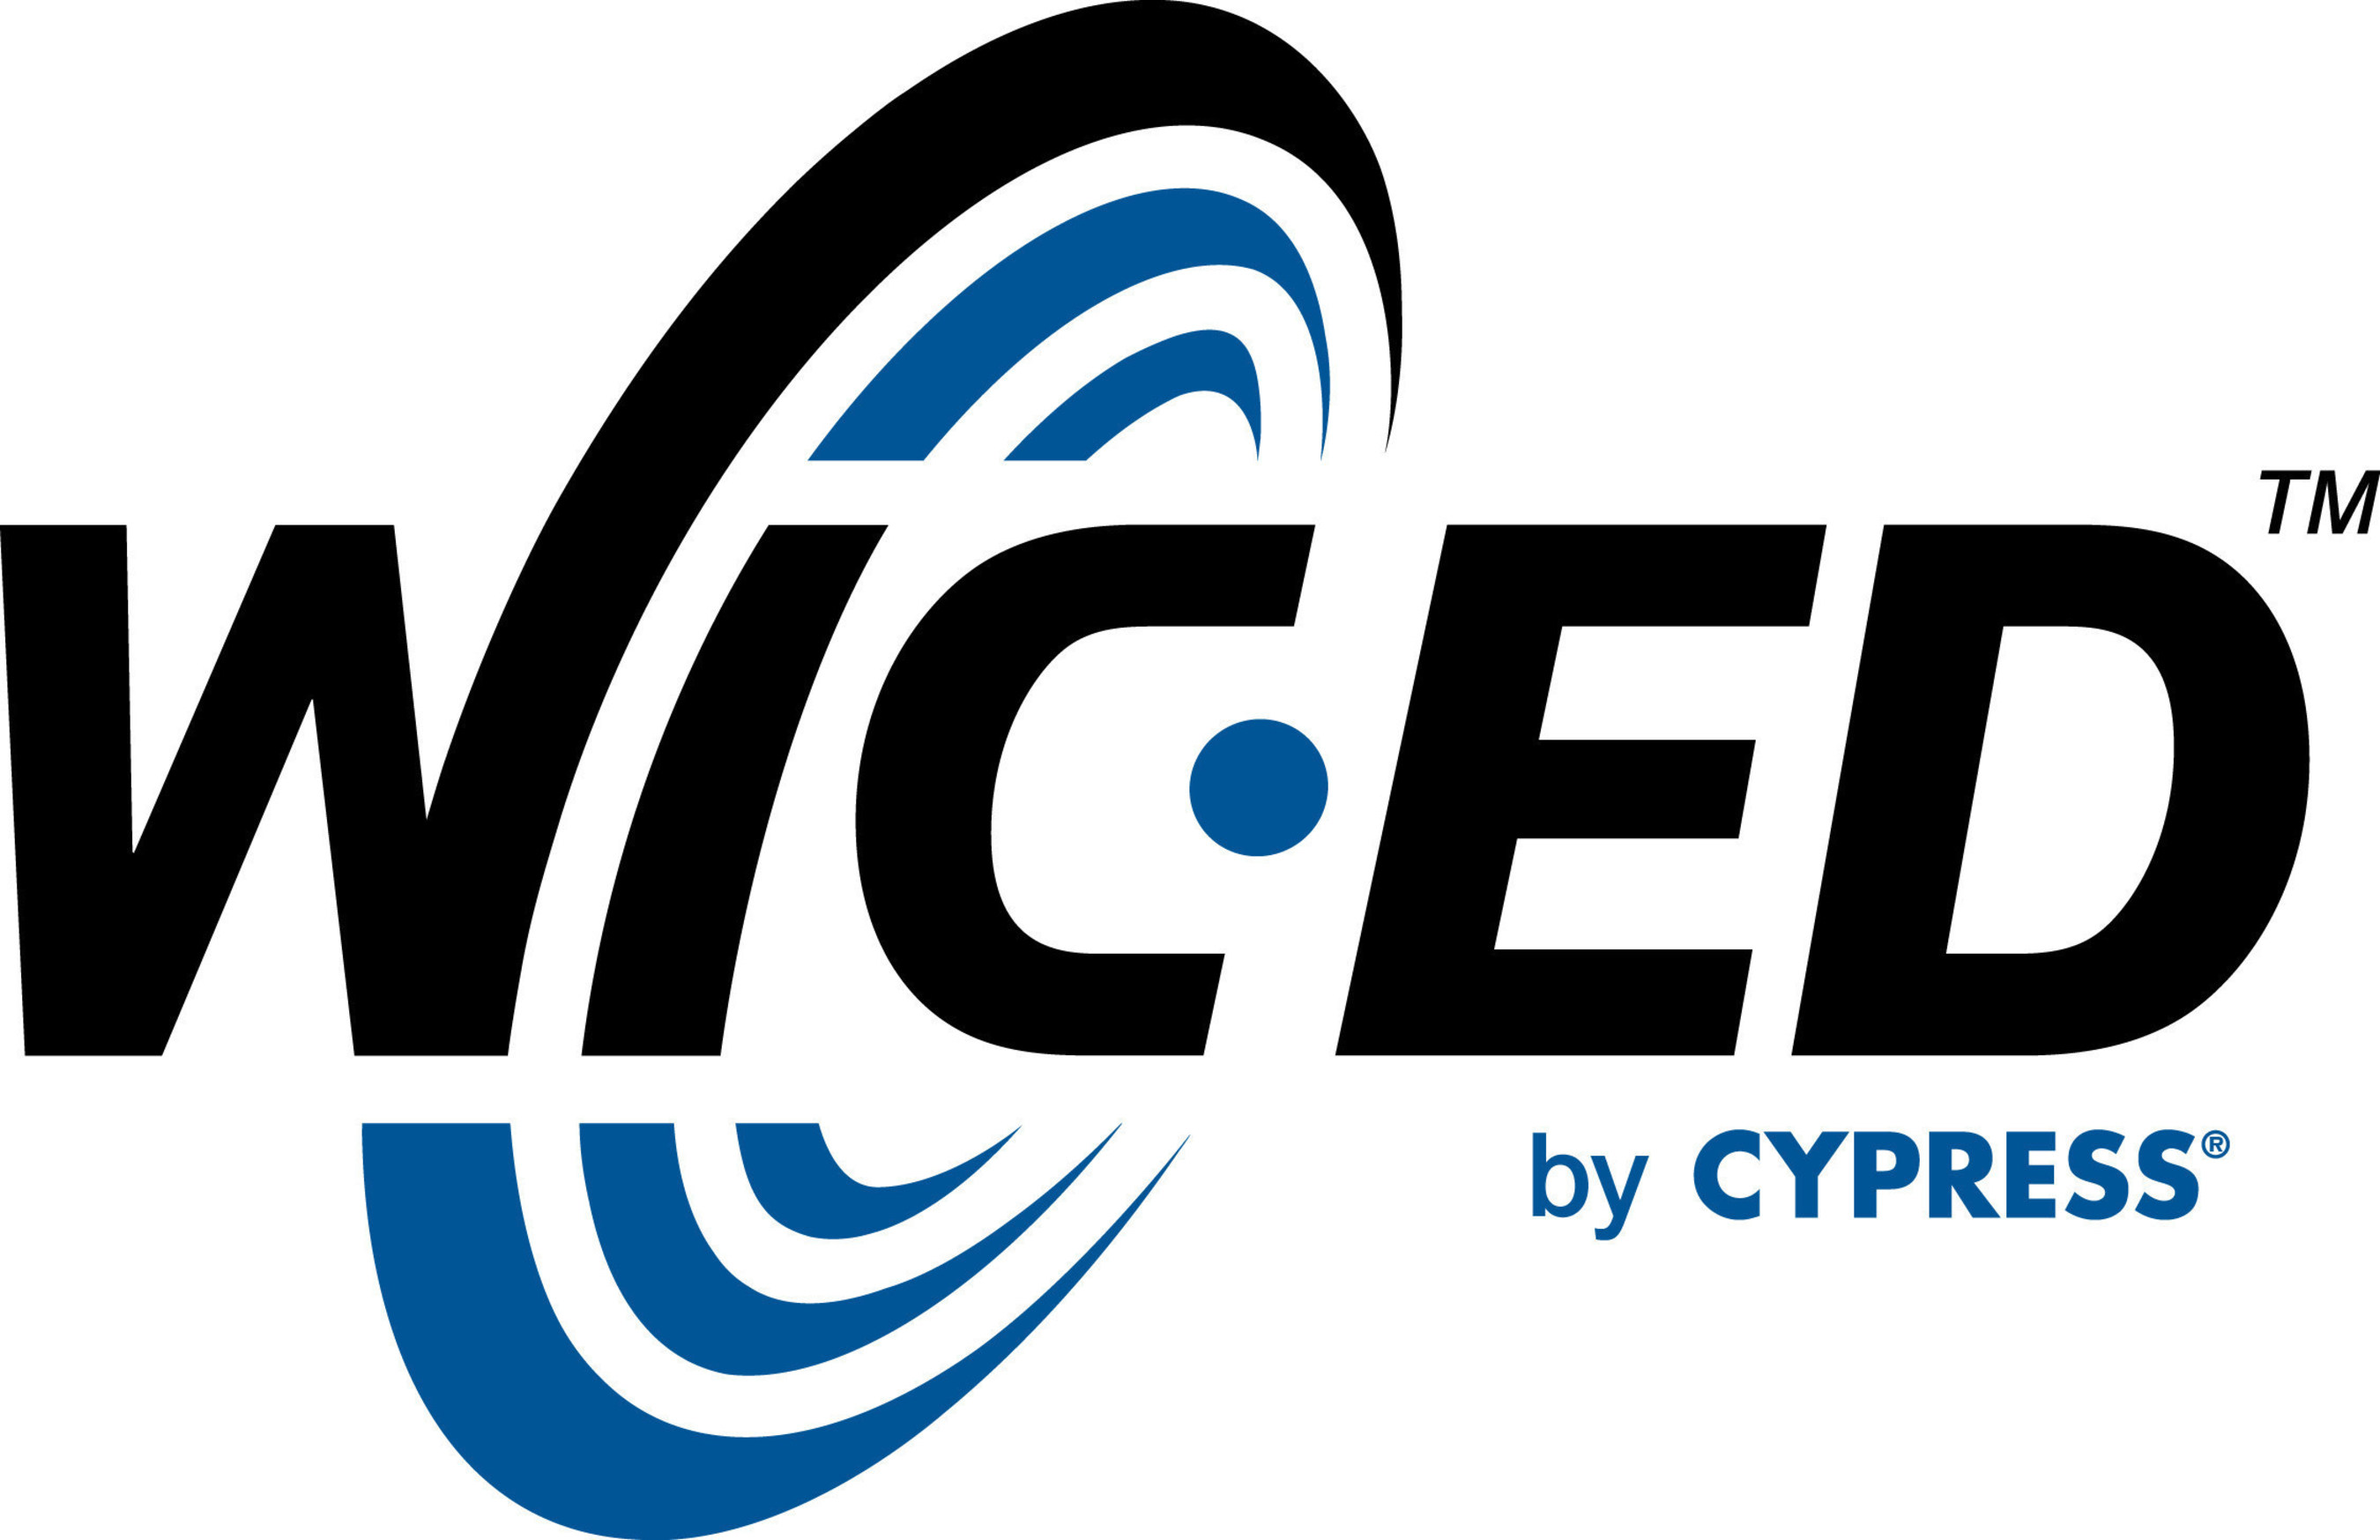 Pictured is the logo for WICED, the wireless radio software development kit, ecosystem and developer community that Cypress Semiconductor acquired from Broadcom.